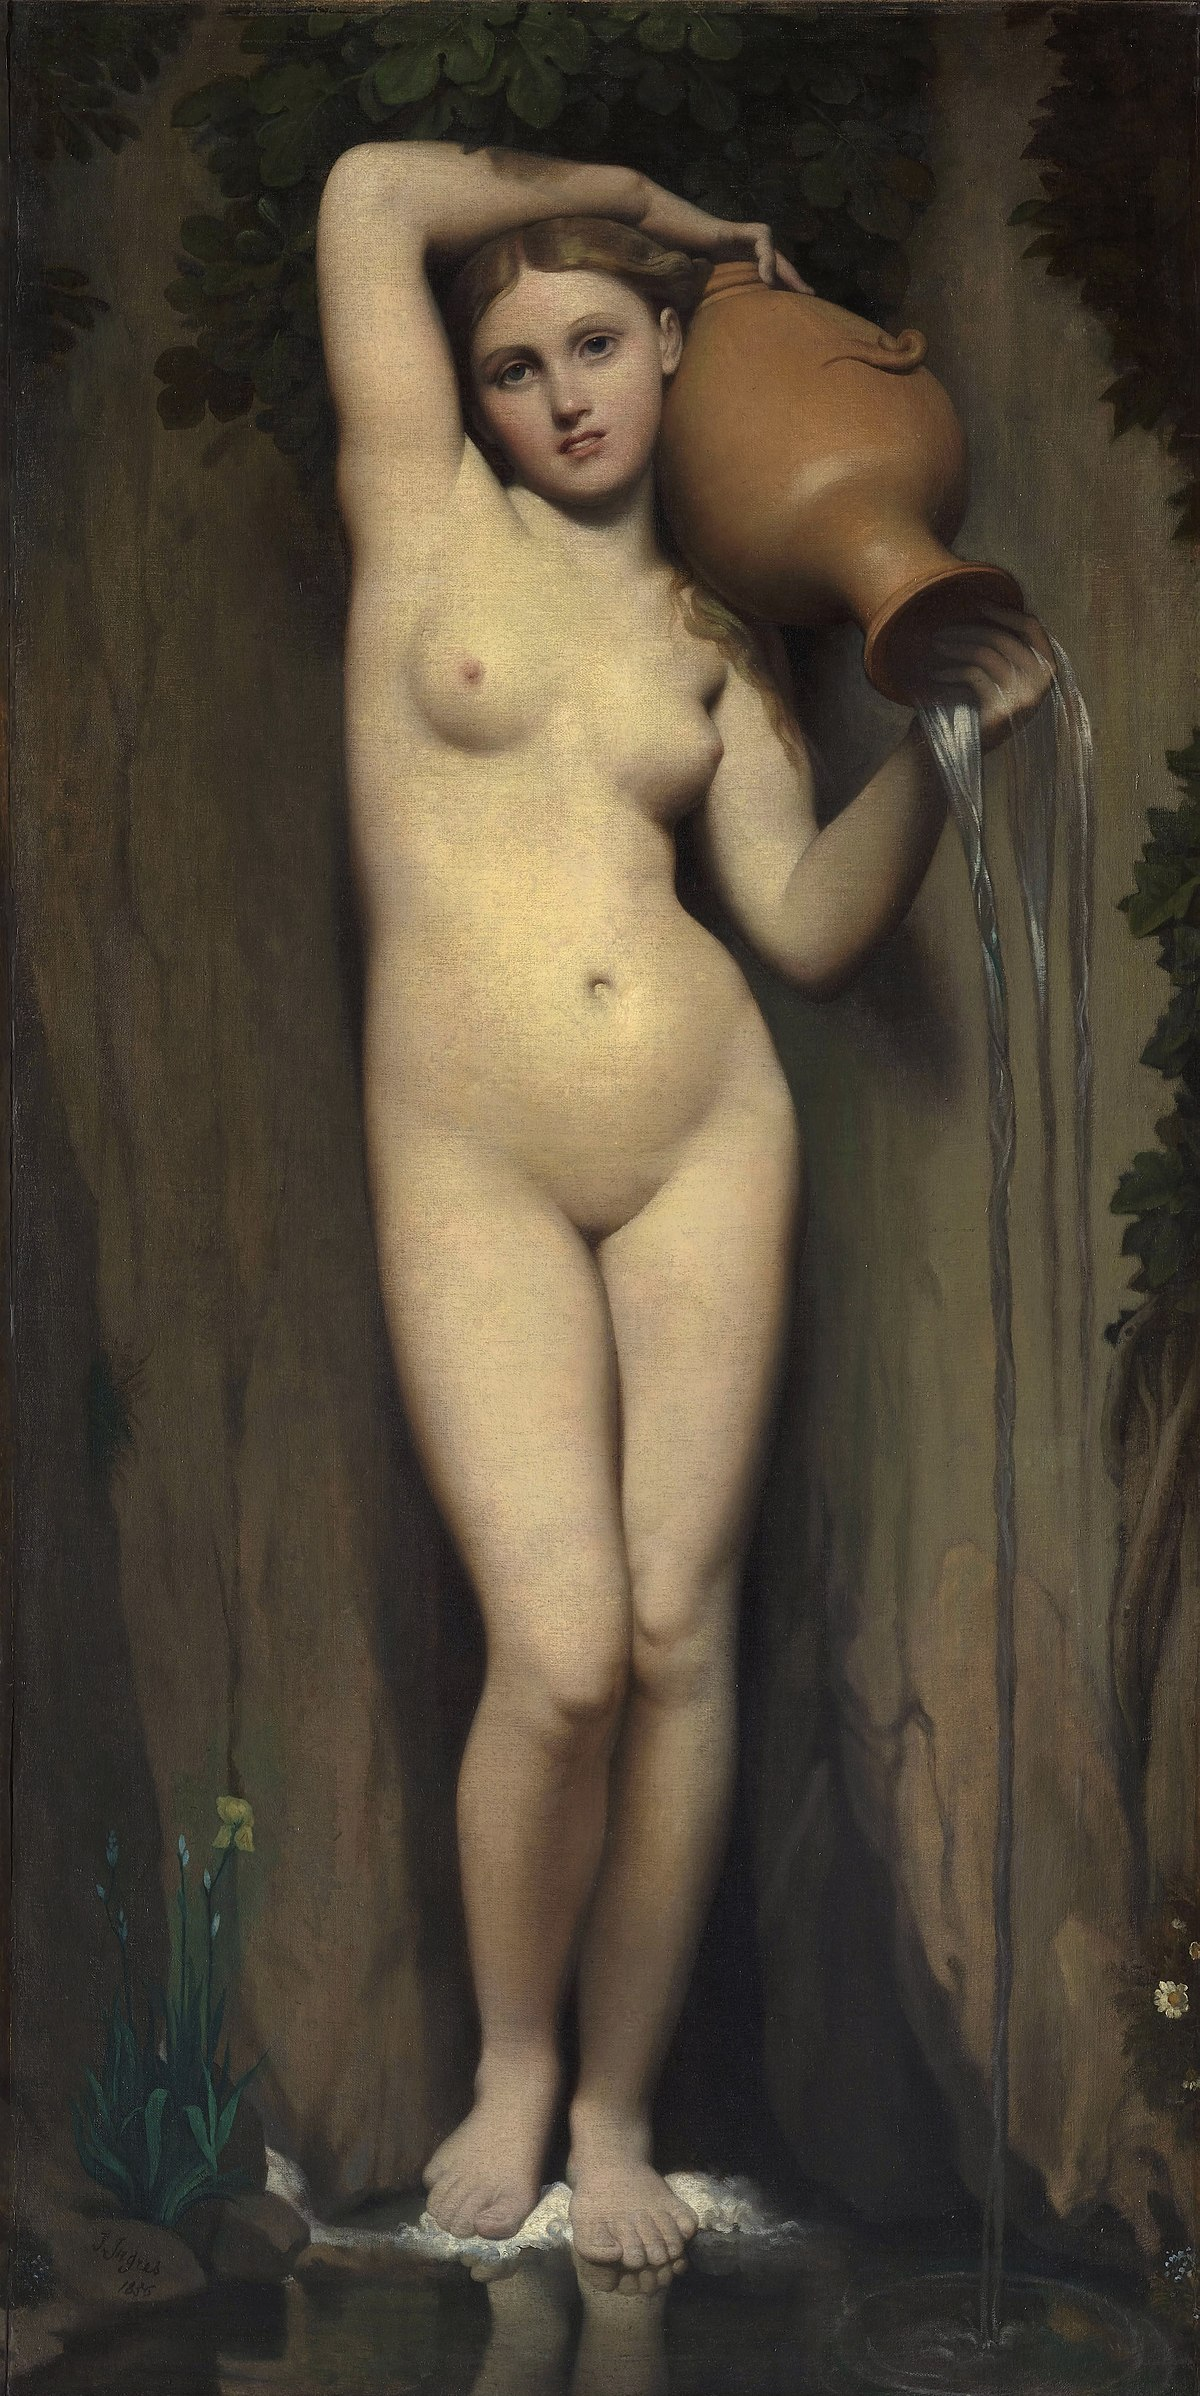 La Source - Jean Auguste Dominique Ingres (1856)